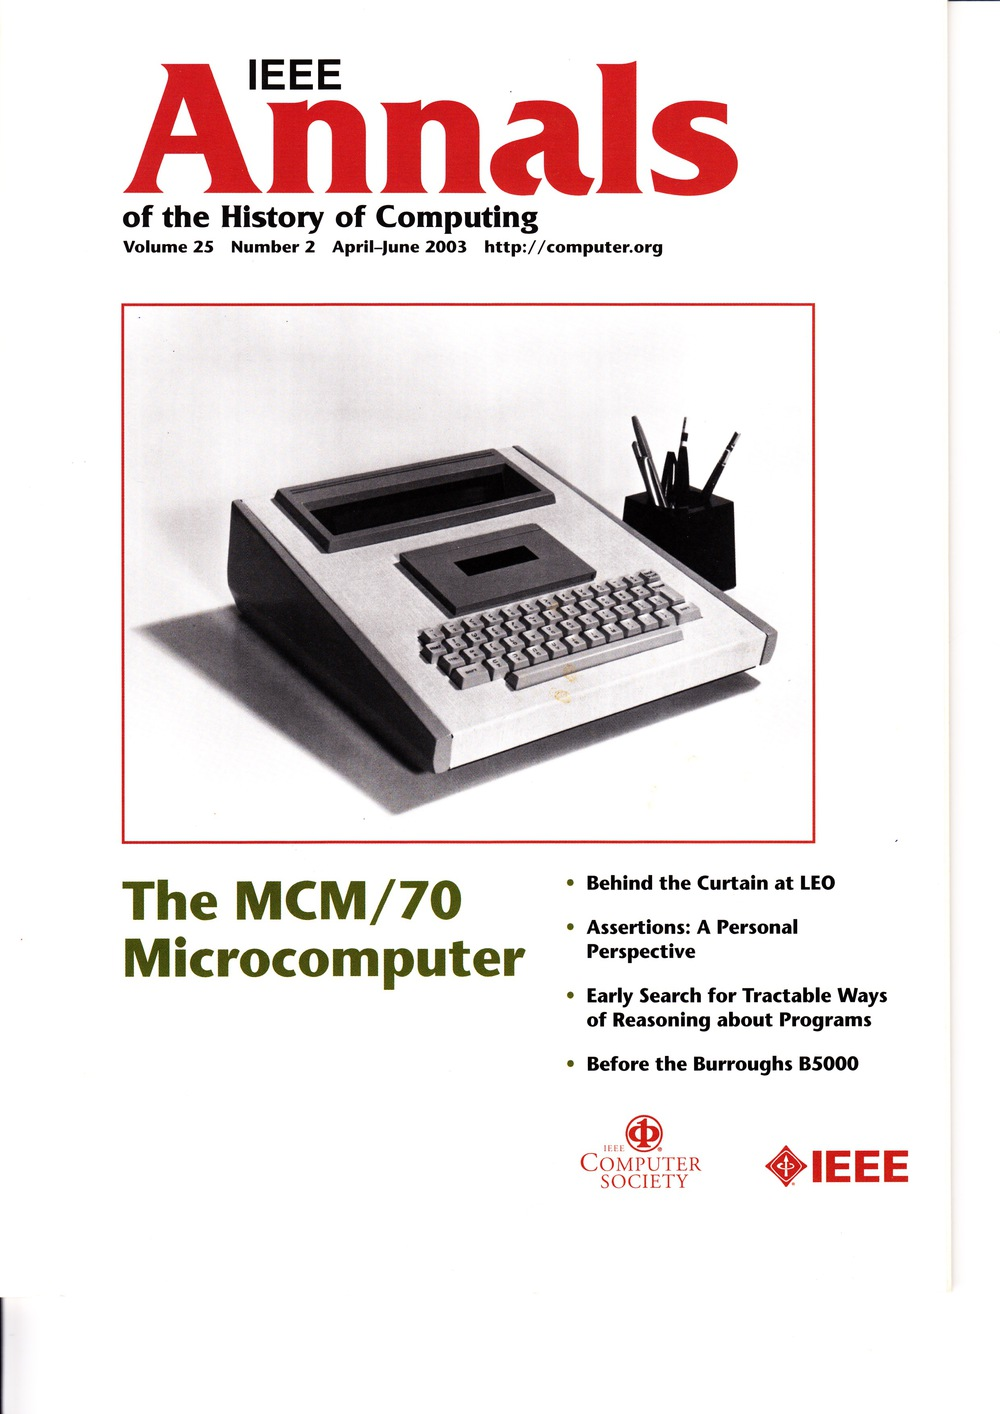 Scan of Document: IEEE Annals of the History of Computing - April-June 2003